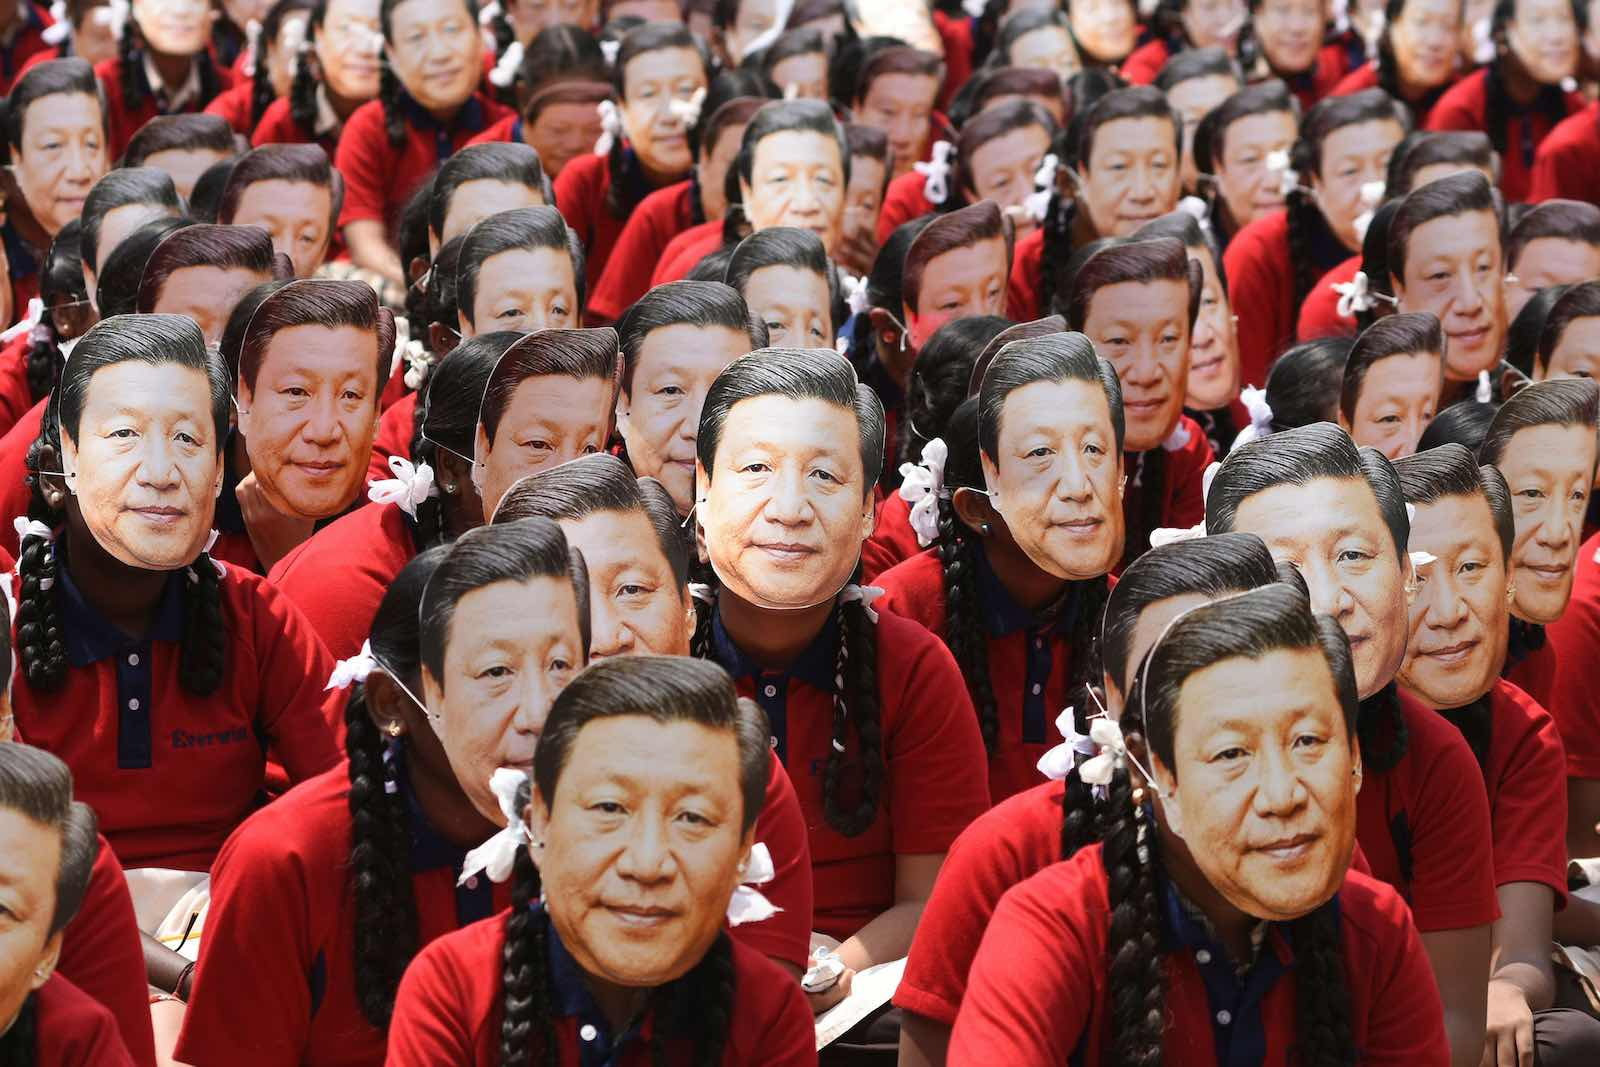 Indian school students wear masks of China's President Xi Jinping in Chennai ahead of a summit in October with his Indian counterpart Narendra Modi at Mamallapuram (Arun Sankar/AFP via Getty Images)